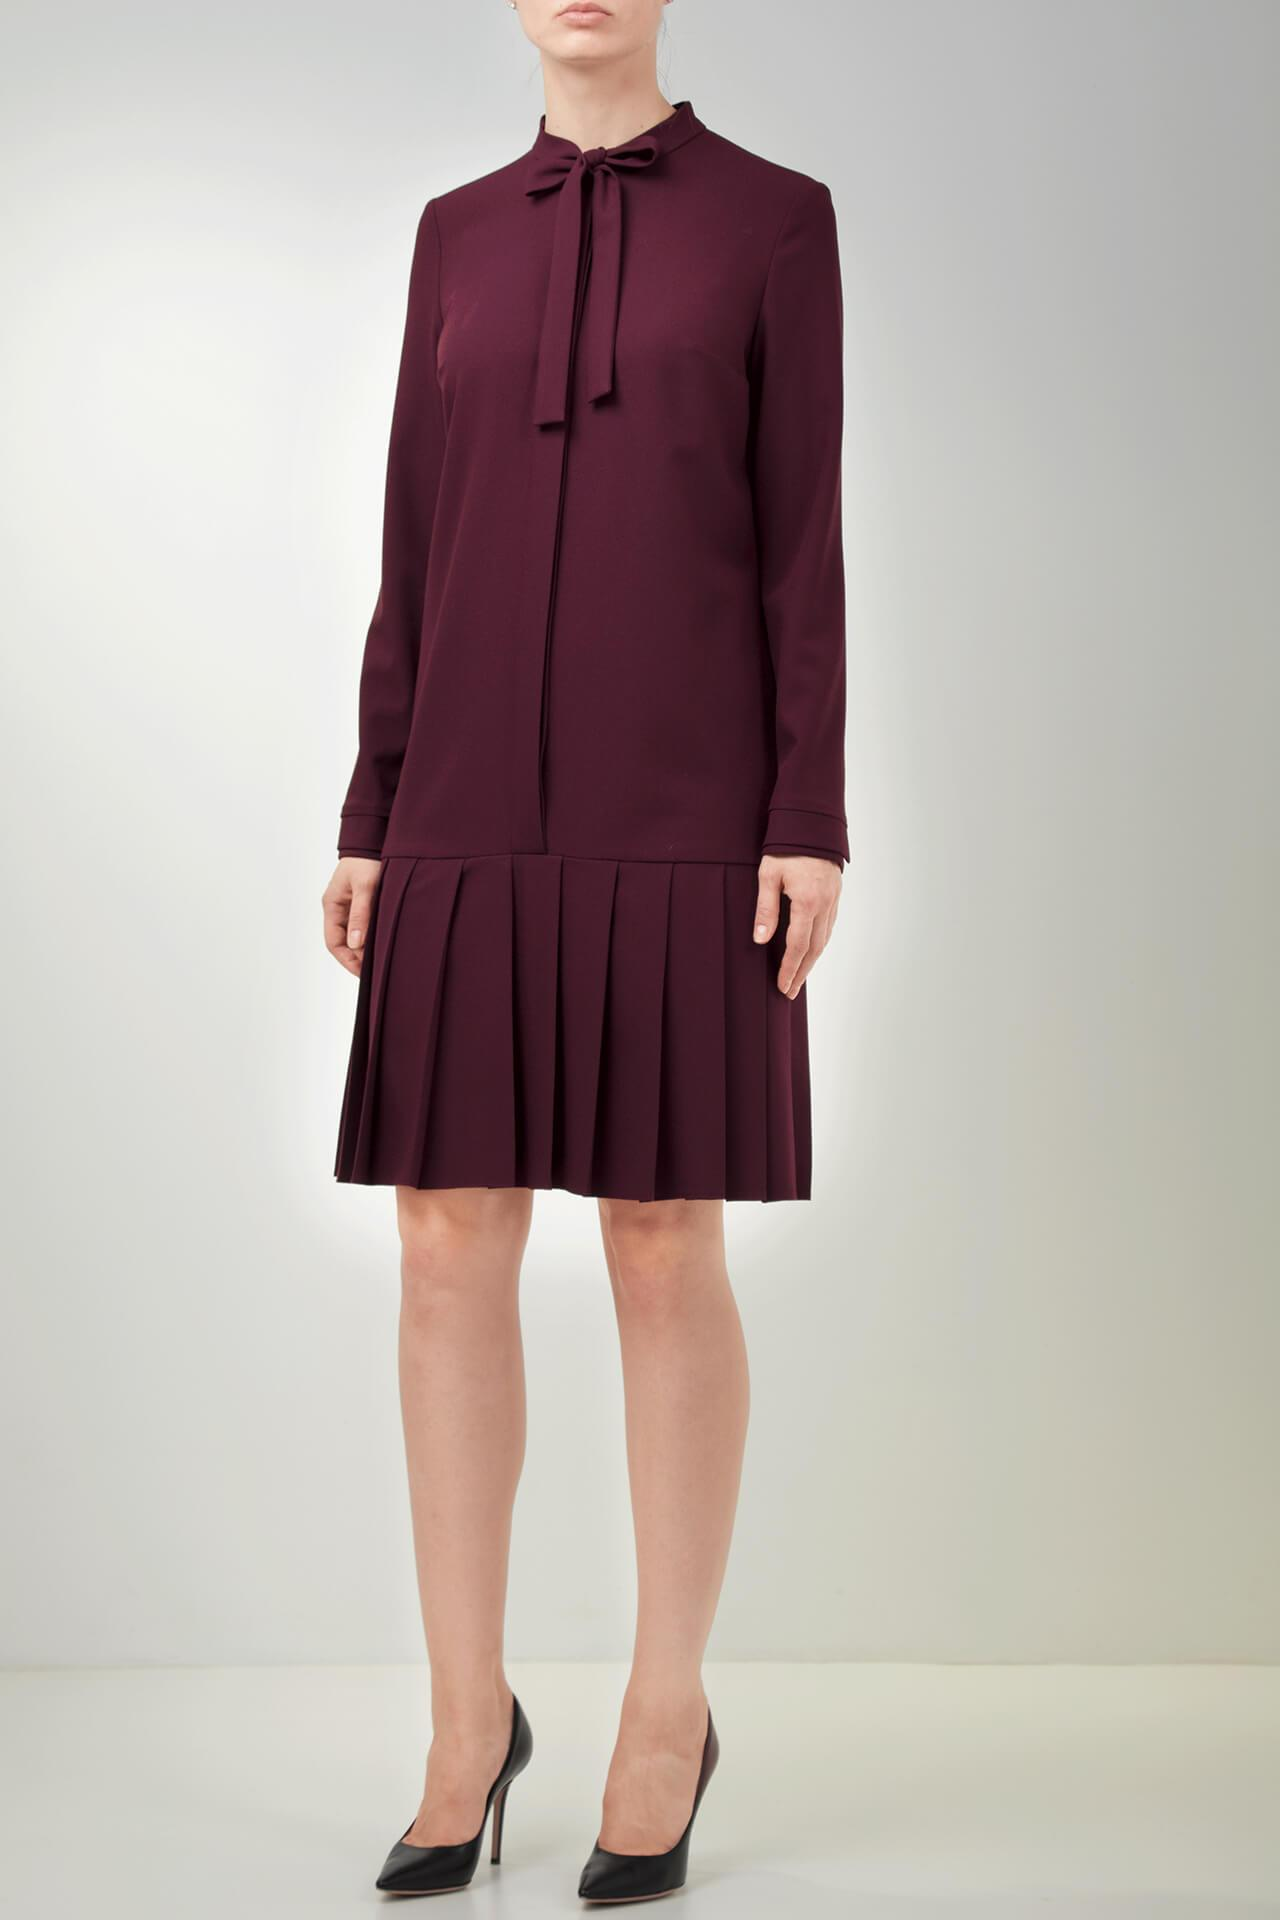 Outfit ideas for lawyers_burgundy dress